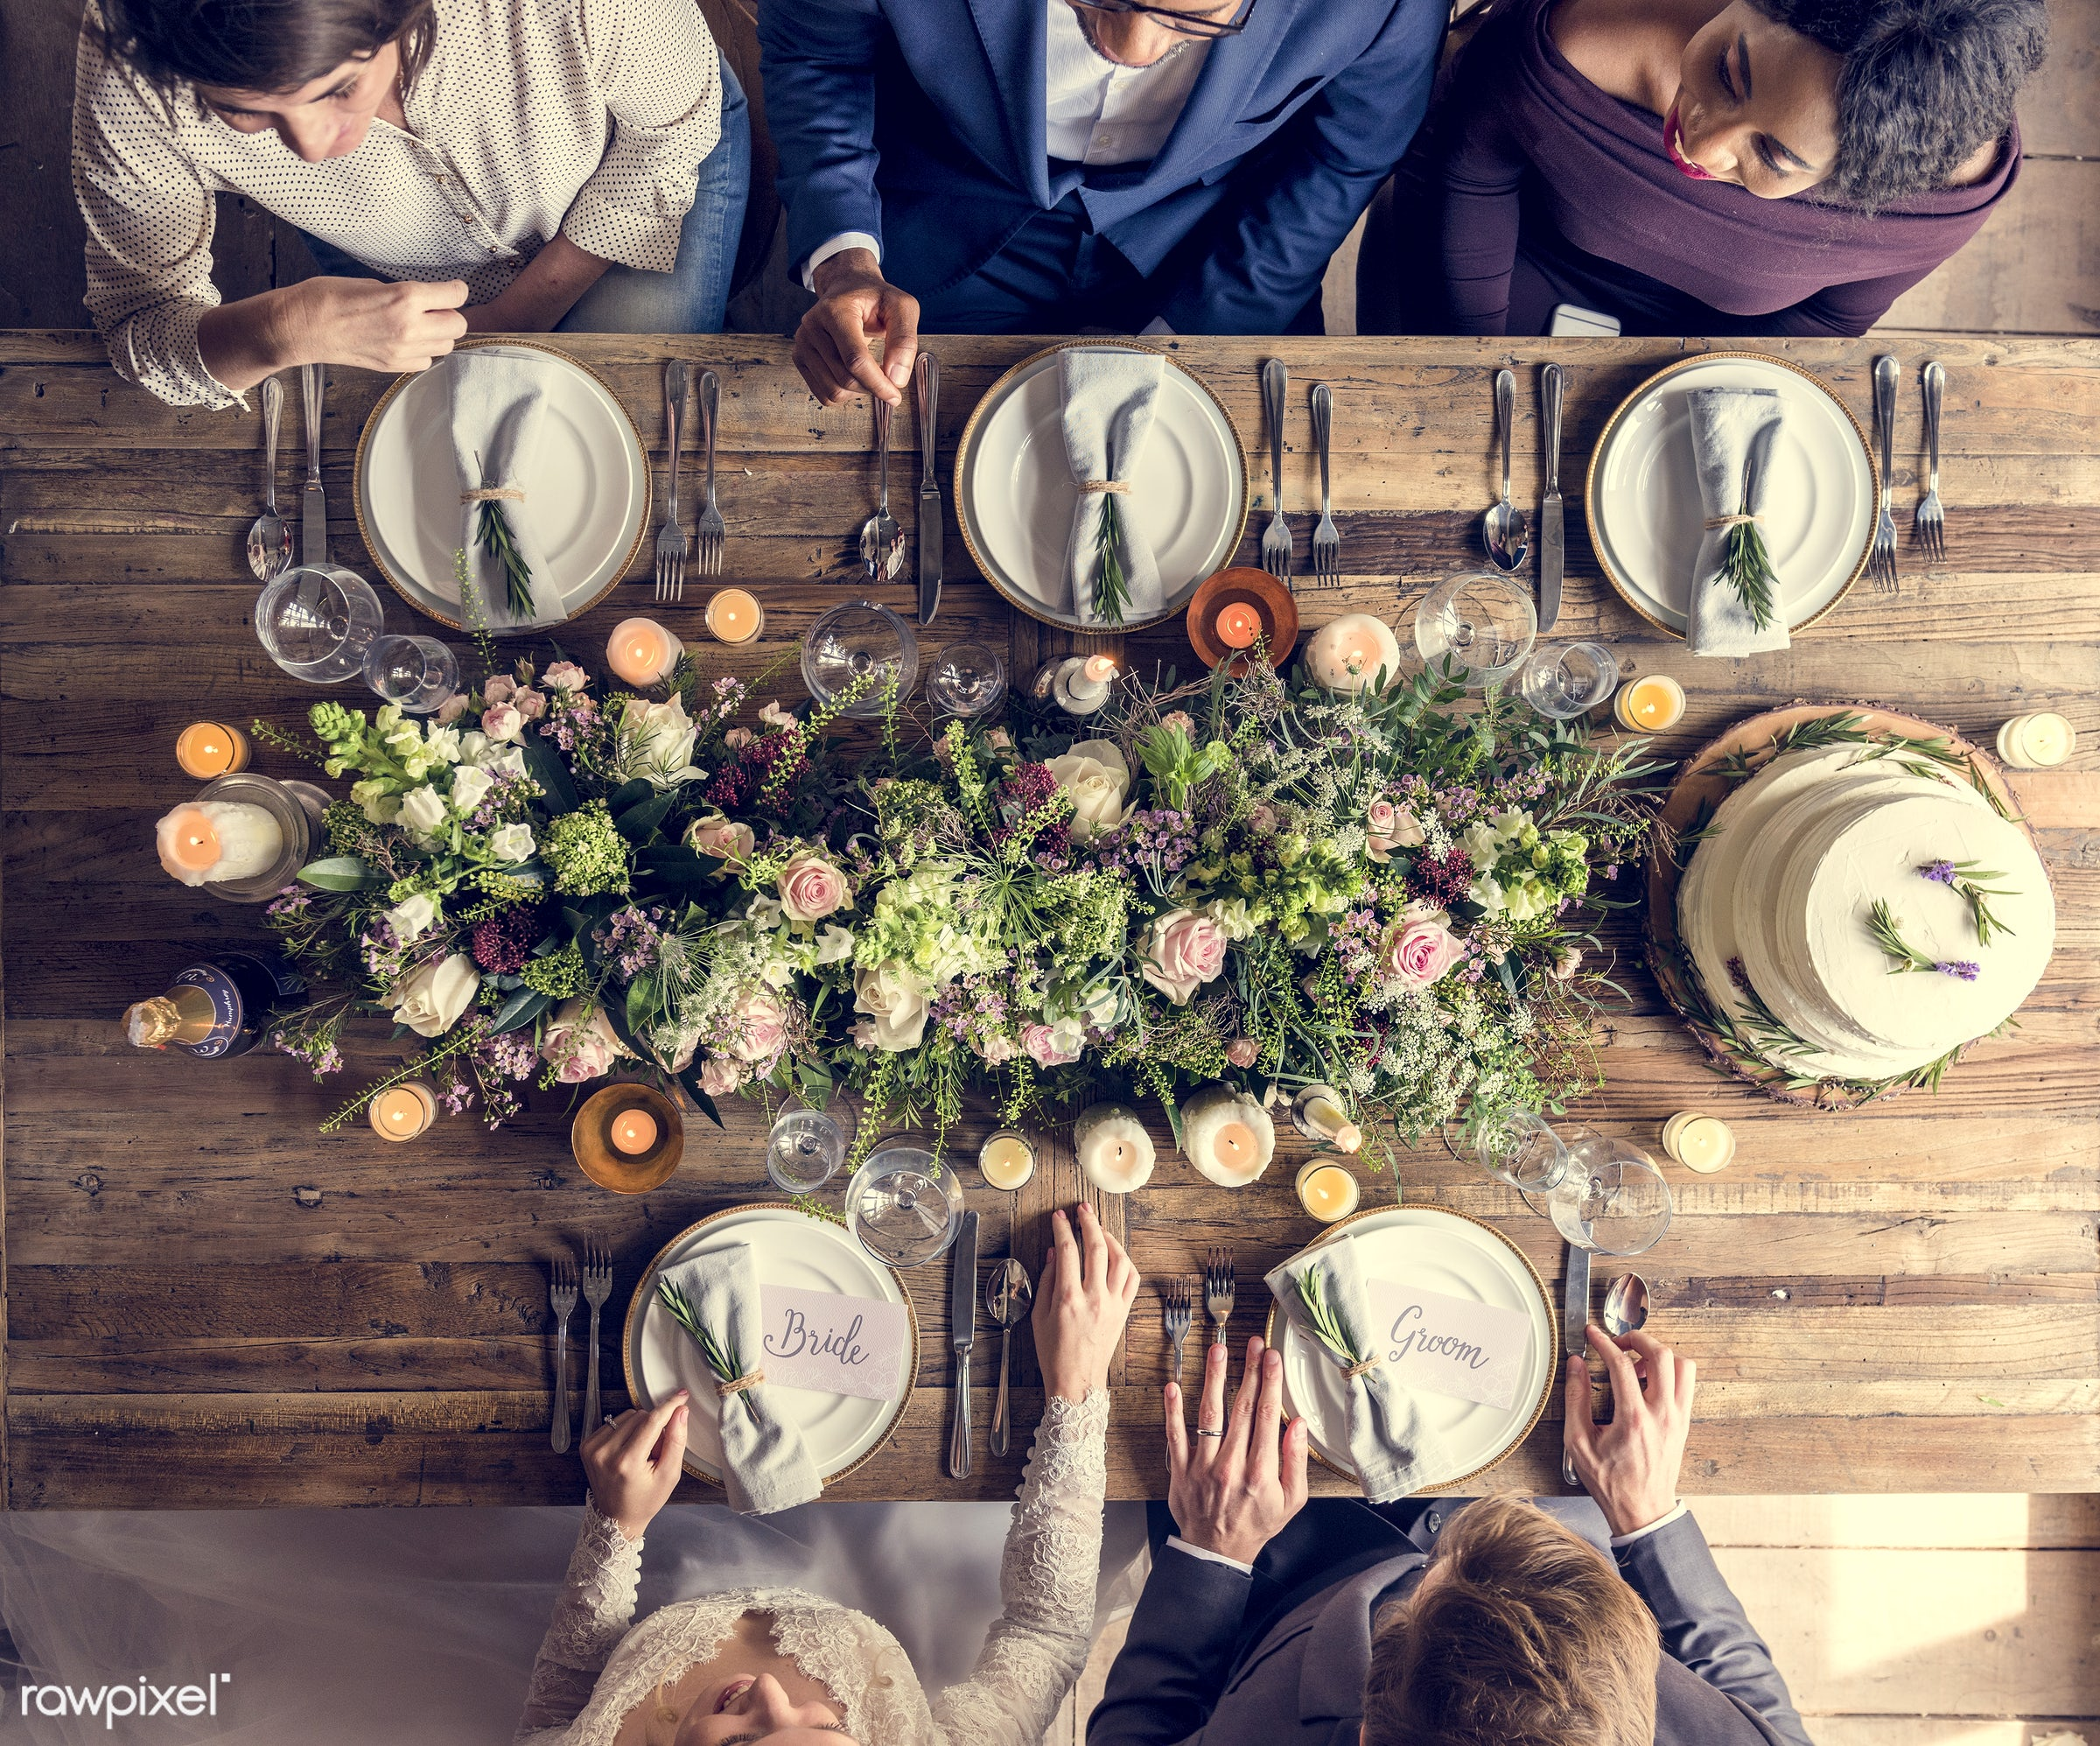 person, bonding, husband, people, love, sharing, woman, event, couple, soulmate, bride, aerial view, marry, flower, man,...